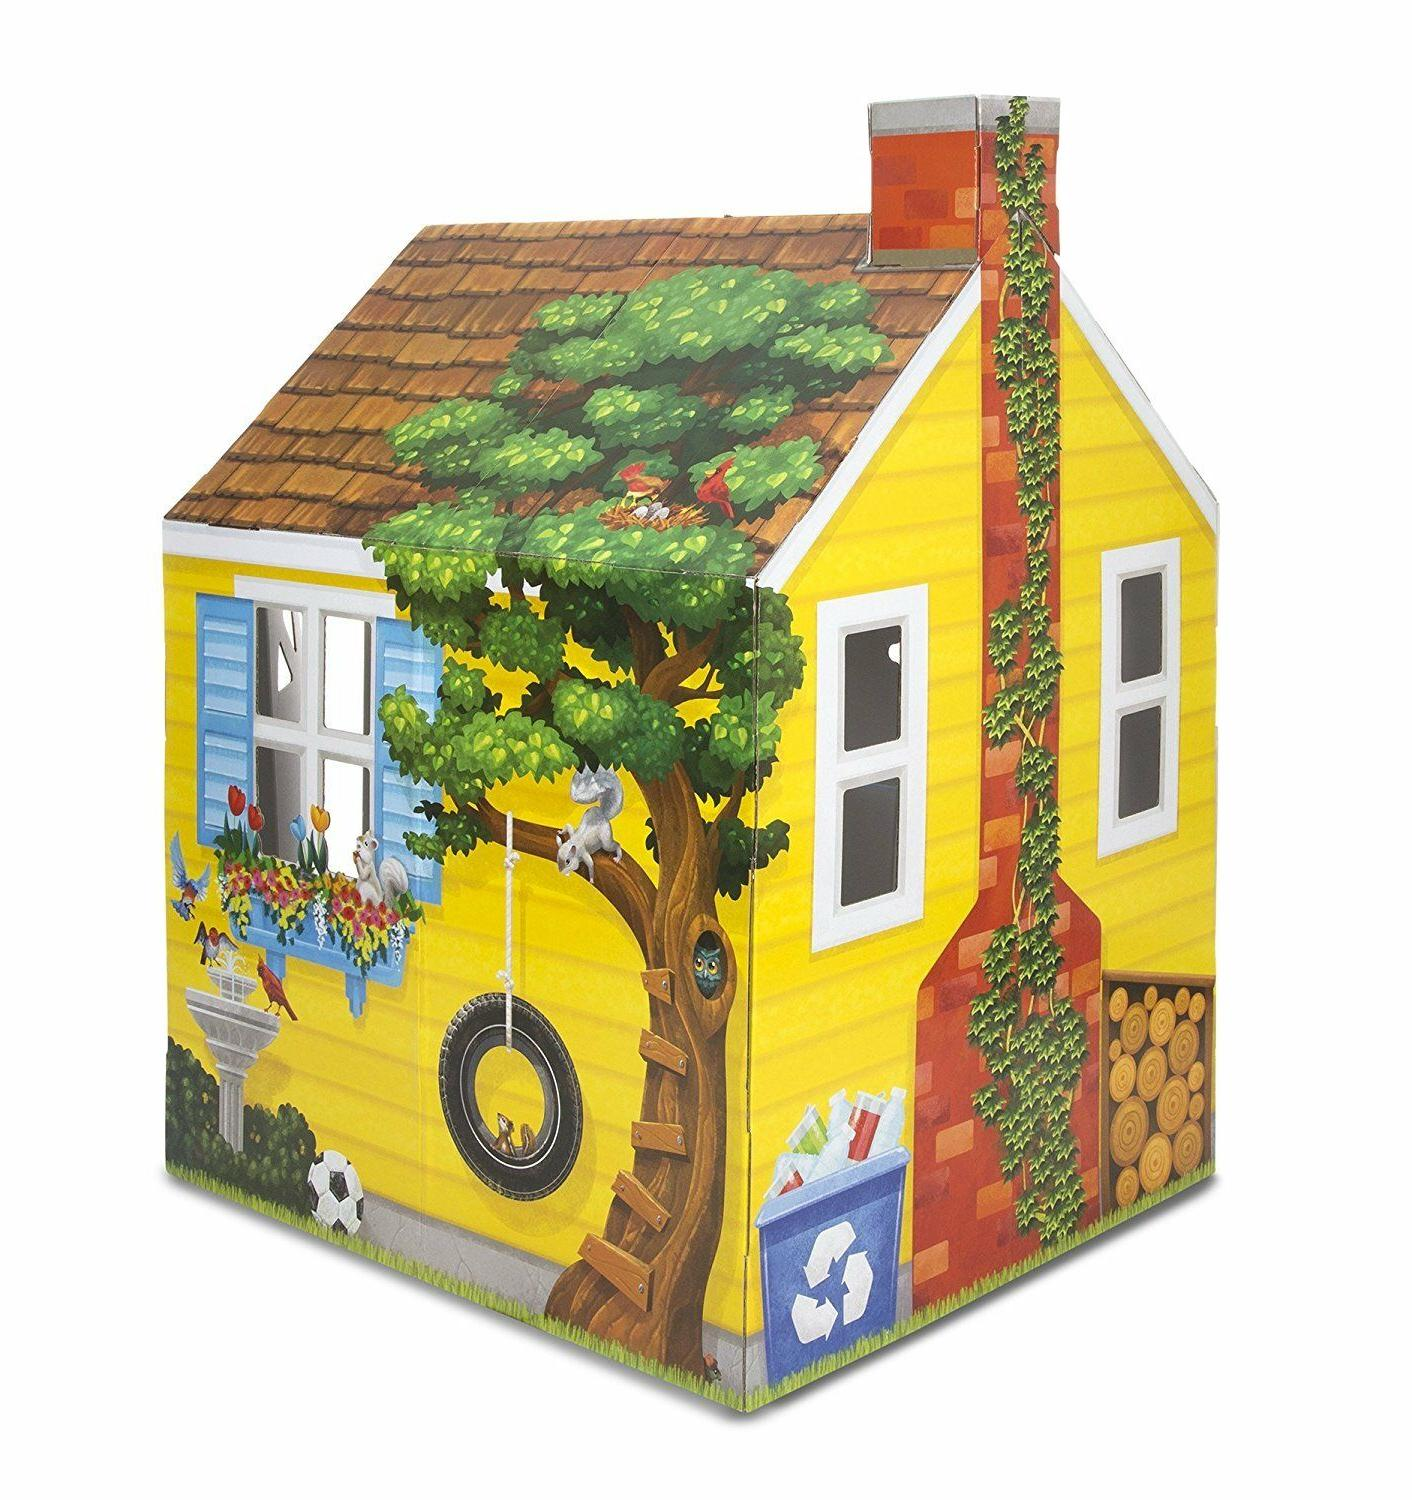 Melissa & Doug Structure Playhouse